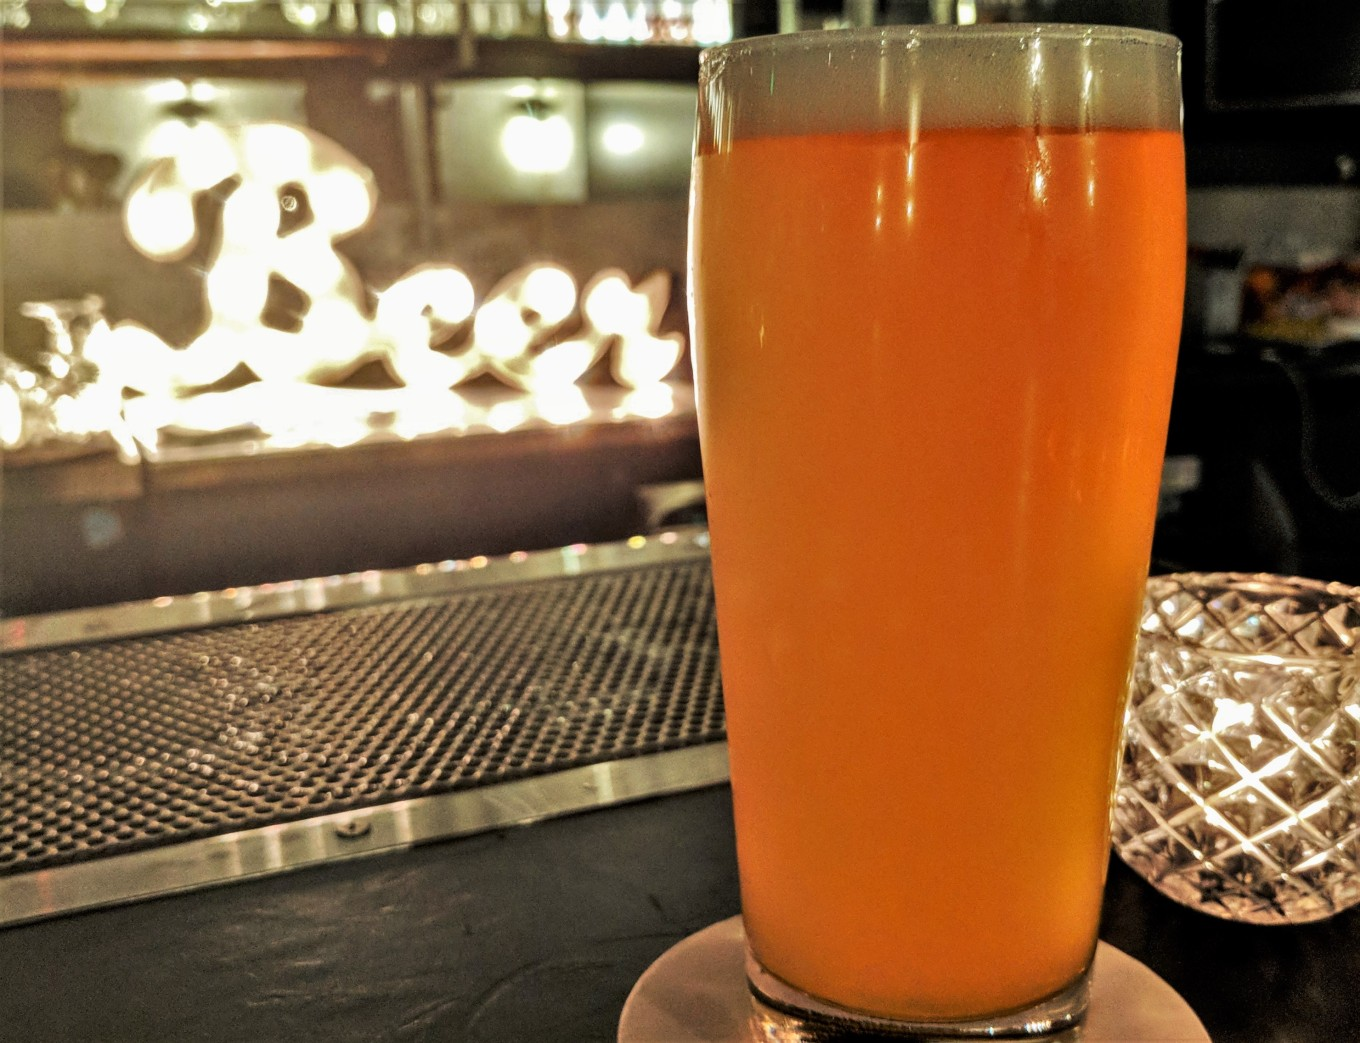 pfriem hazy IPA small bar pdx